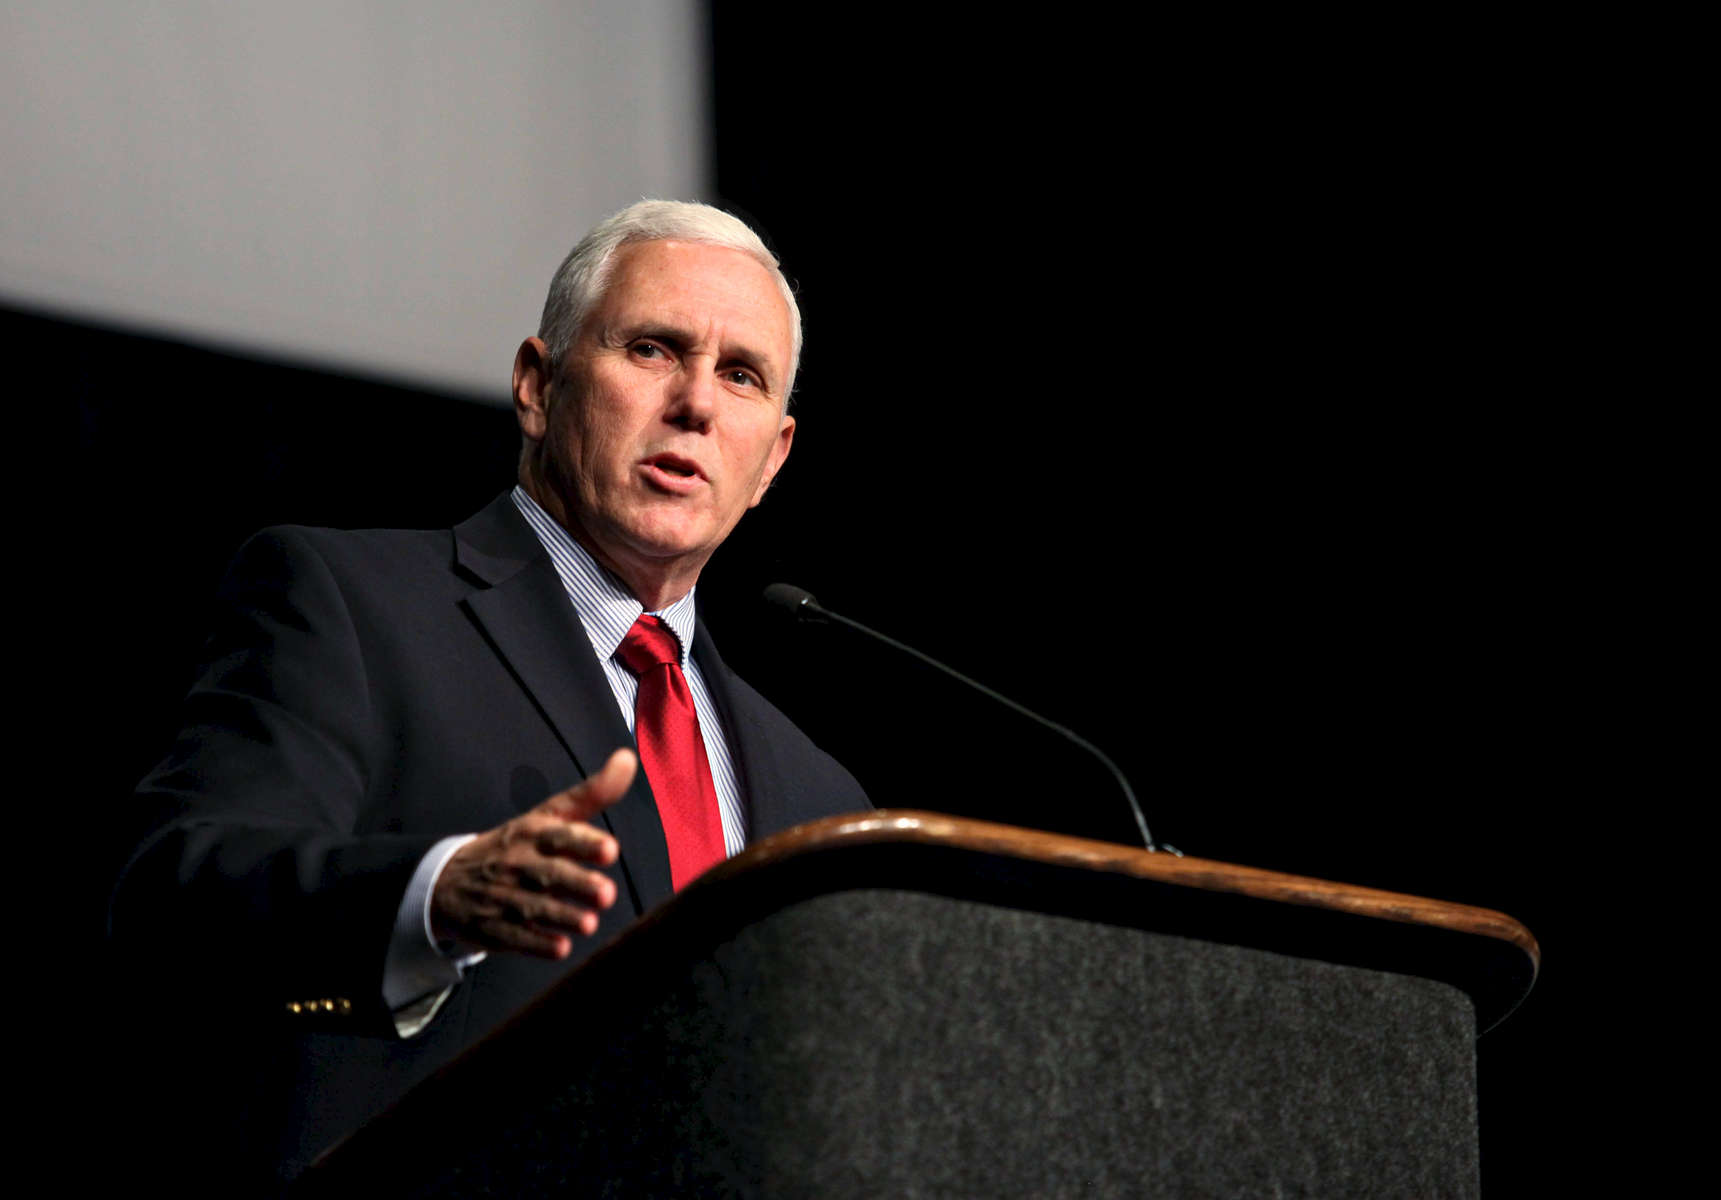 Vice President Mike Pence. Event, political, rally photography by Perry Reichanadter, Wayne Images.